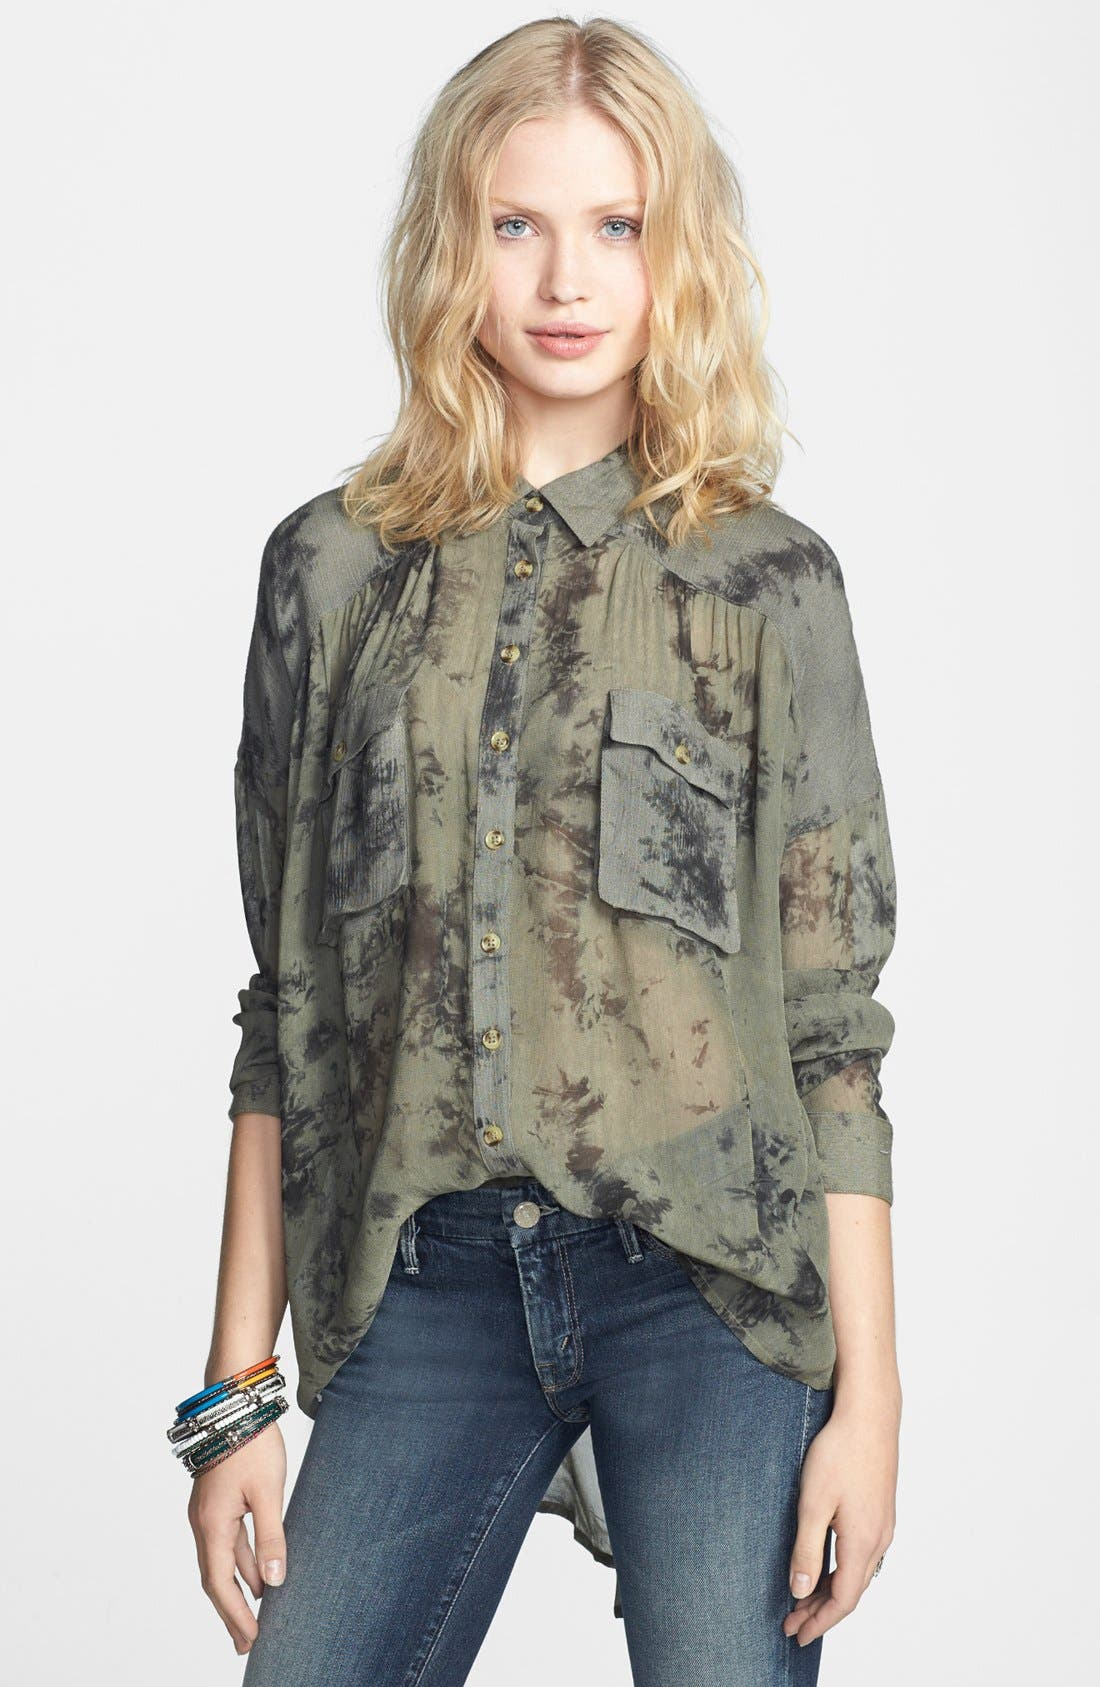 Alternate Image 1 Selected - Free People 'Hard Days' Sheer Blouse